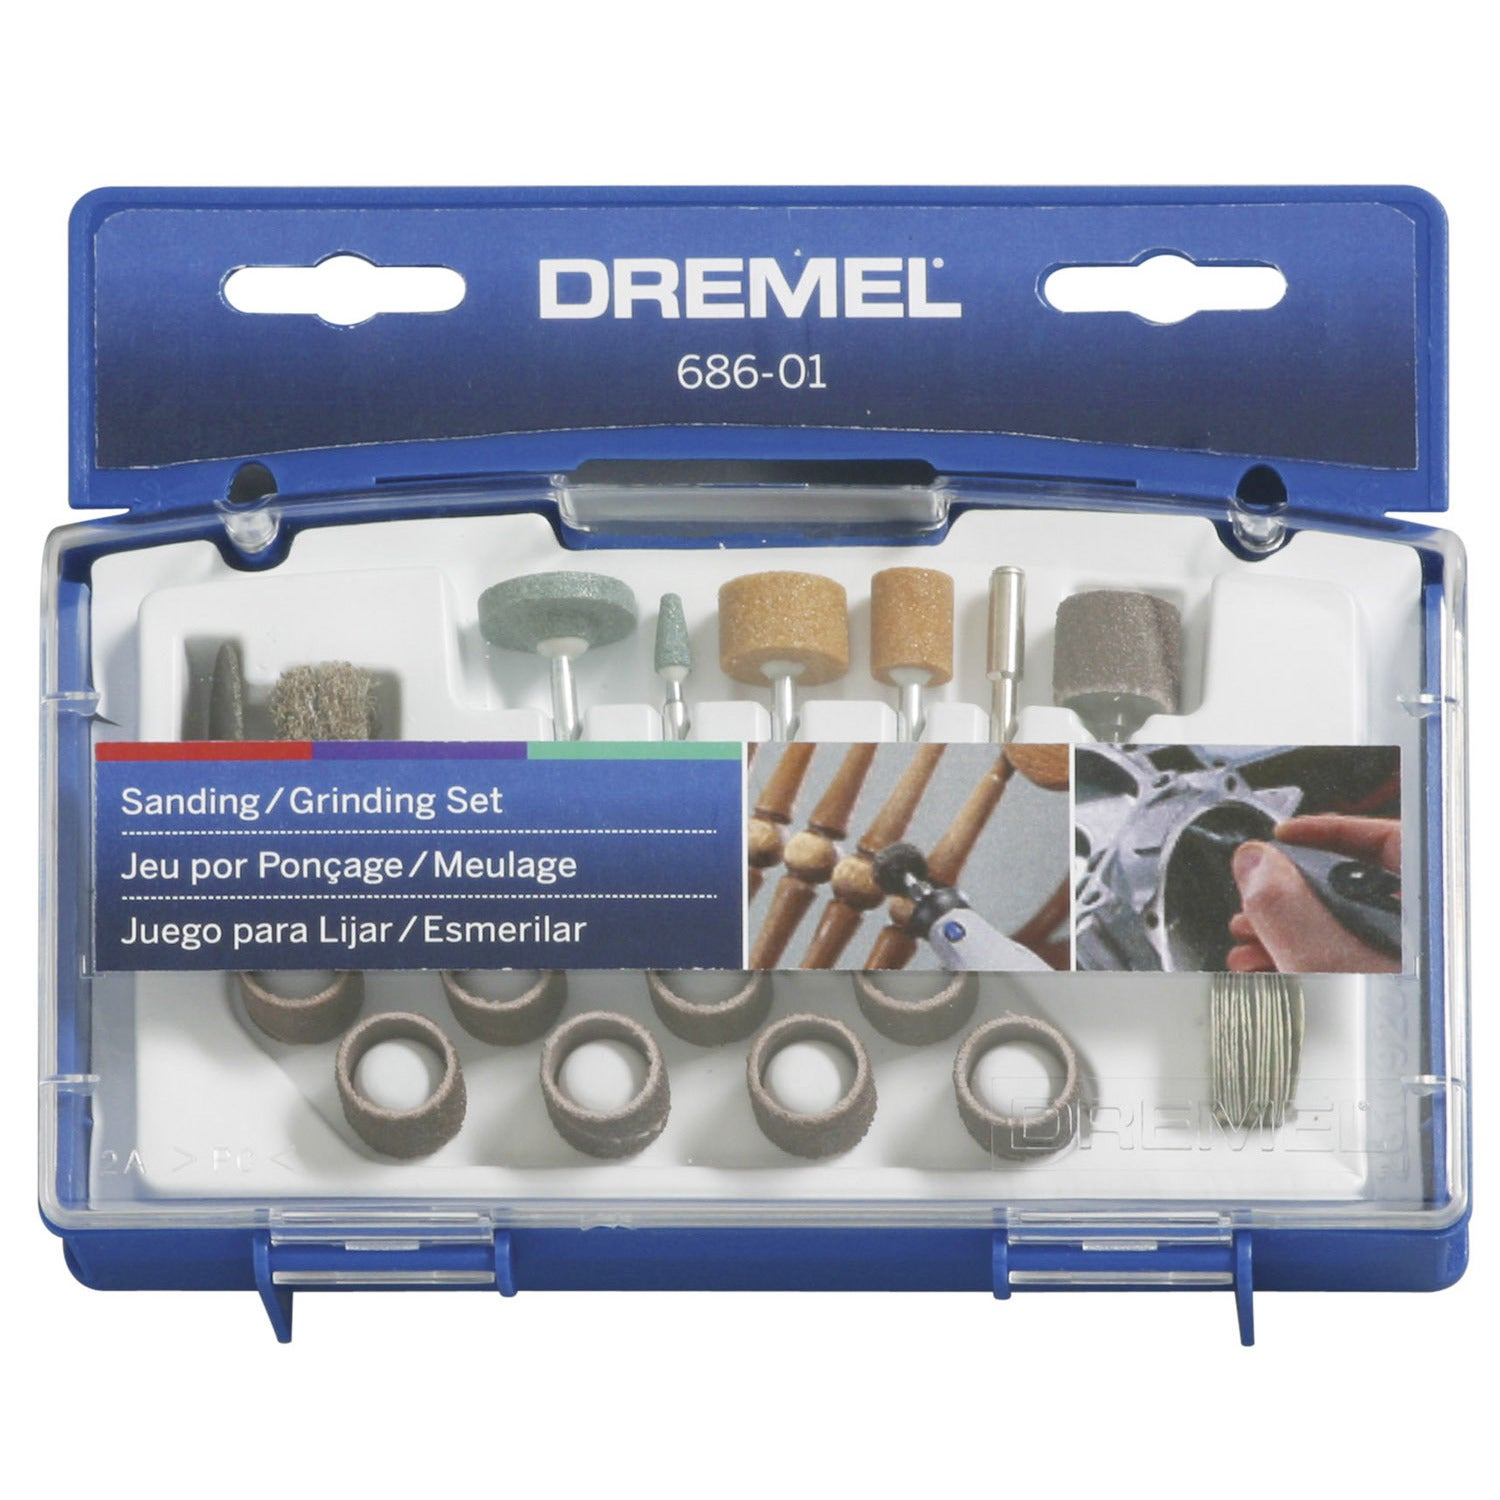 Dremel 686-01 31-piece Sanding and Grinding Accessory Kit...